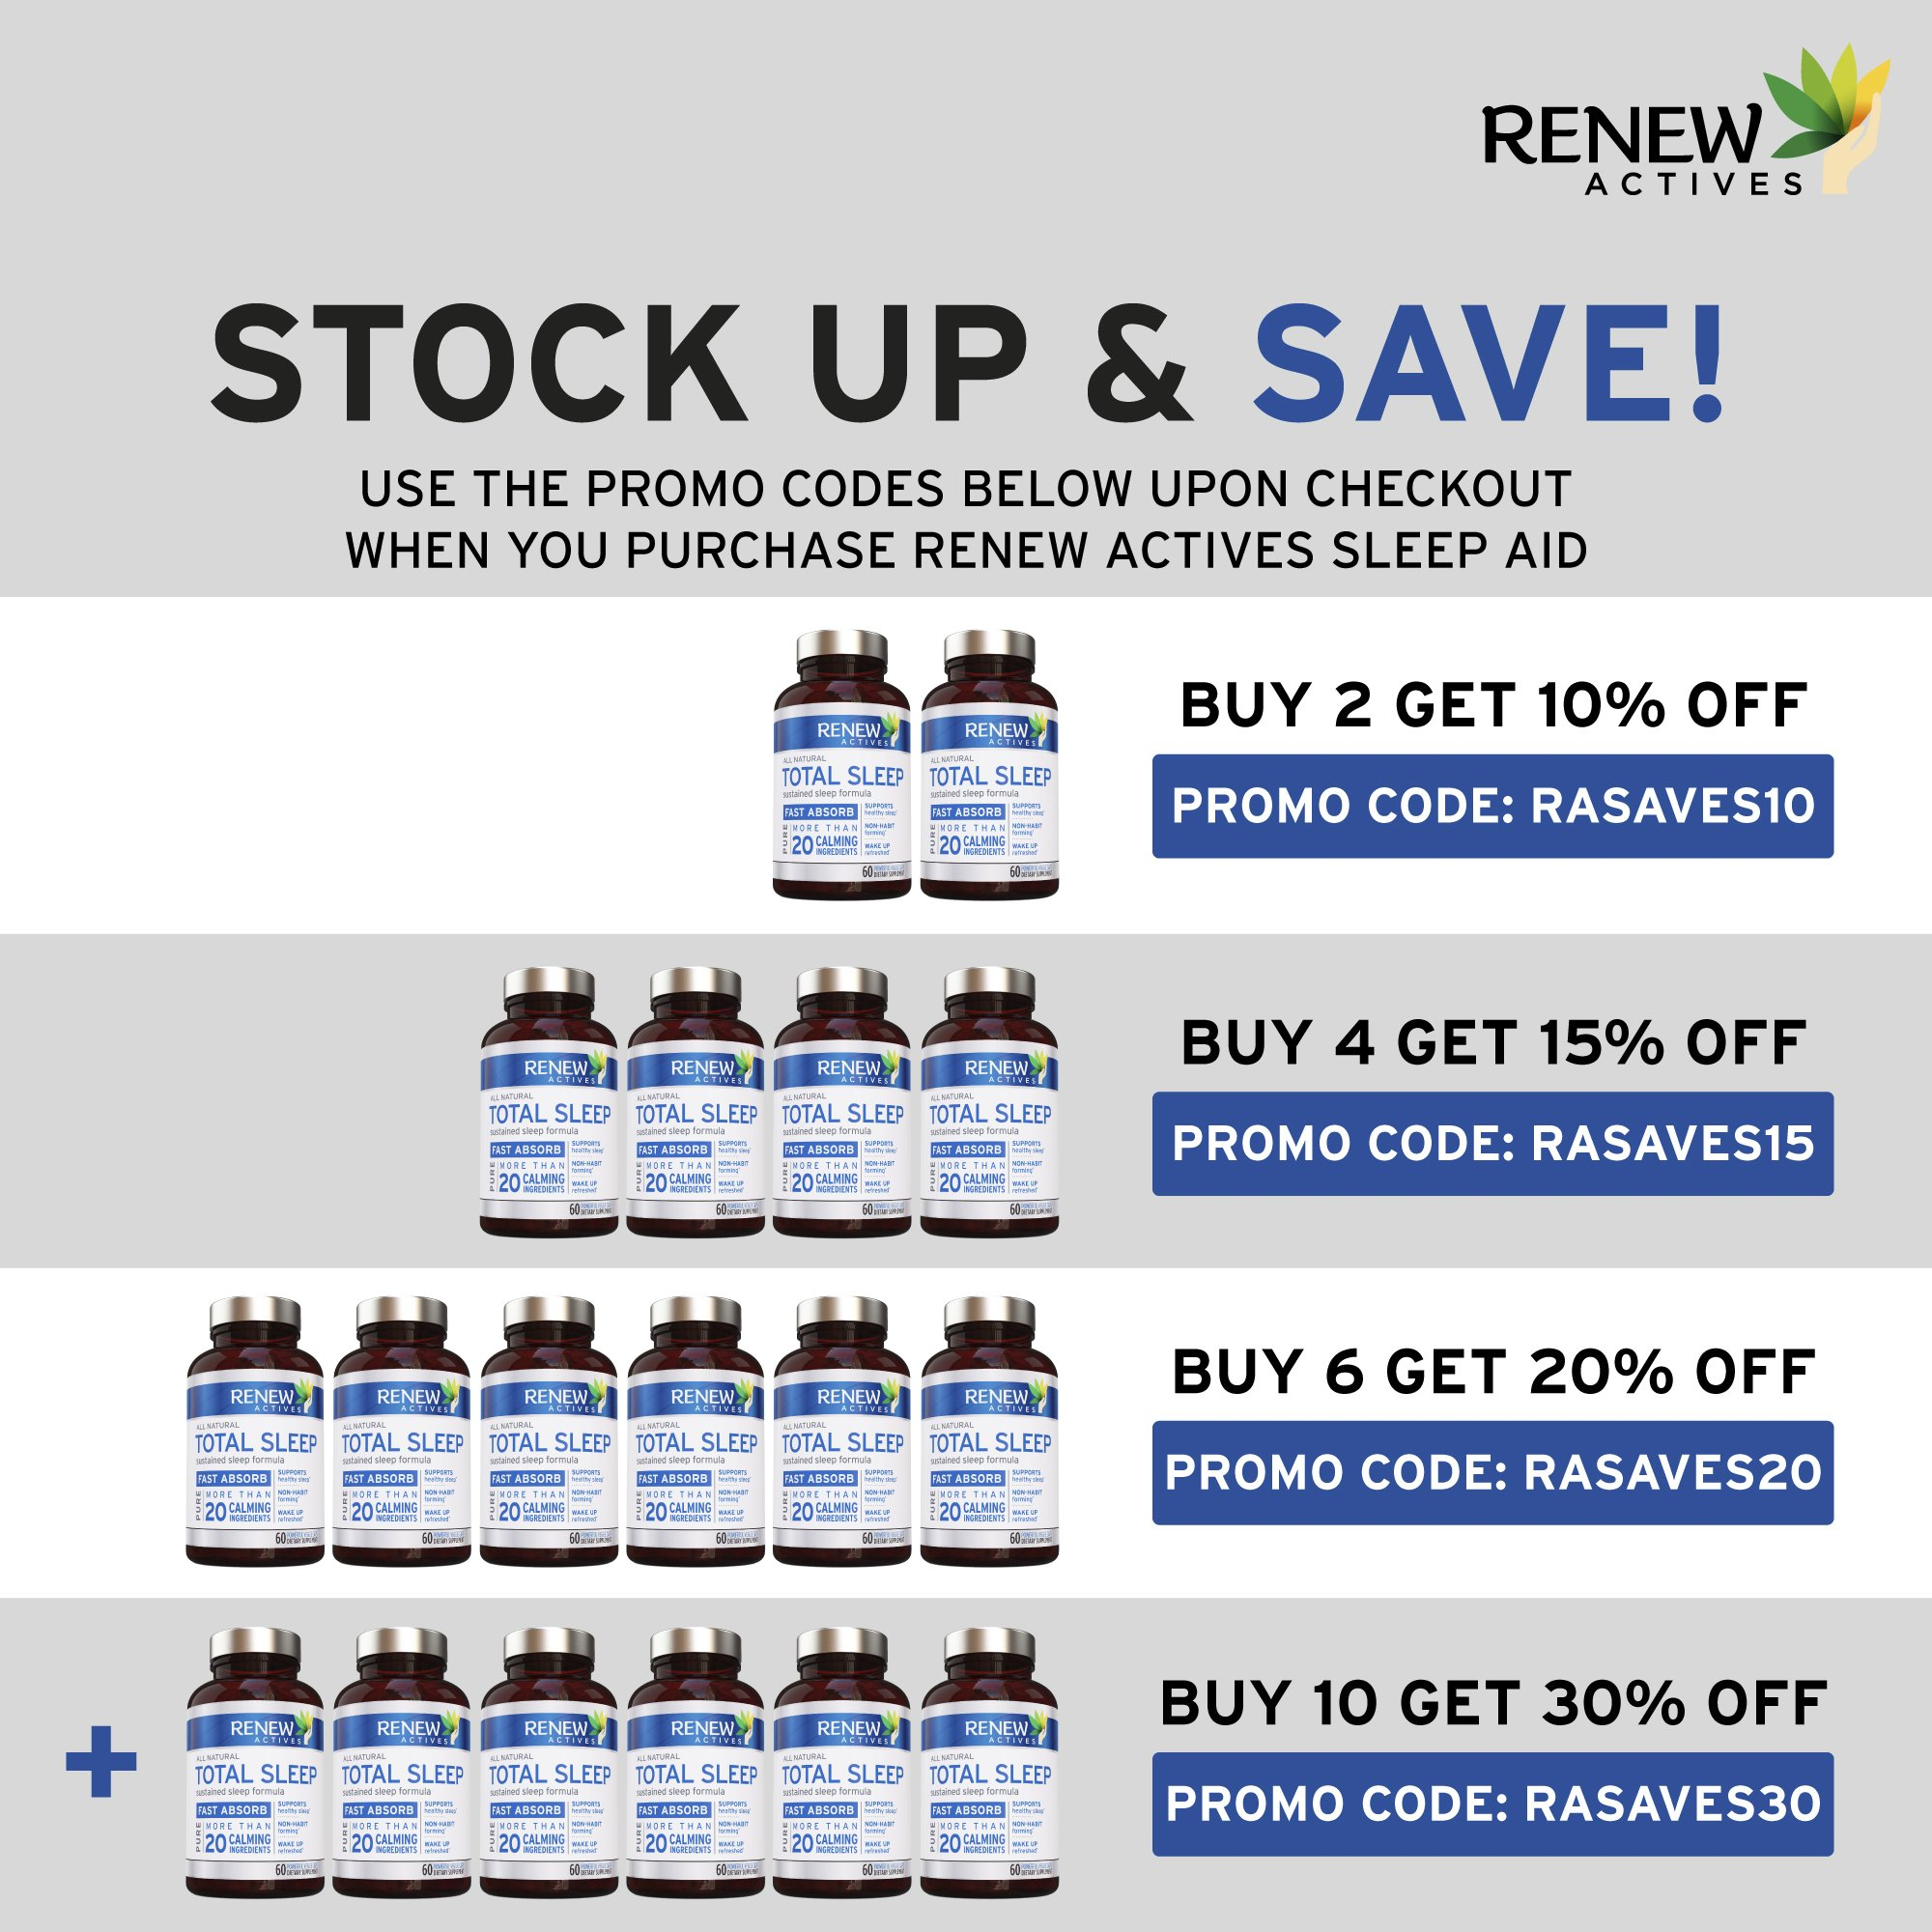 All Natural Sleep Aid Supplement. Non-Habit Forming Sleeping Pill. Our Guarantee is A Deeper, Longer & Restful Sleep! Starting Tonight Get the Peaceful & Natural Sleep You Deserve! by Renew Actives (Image #3)